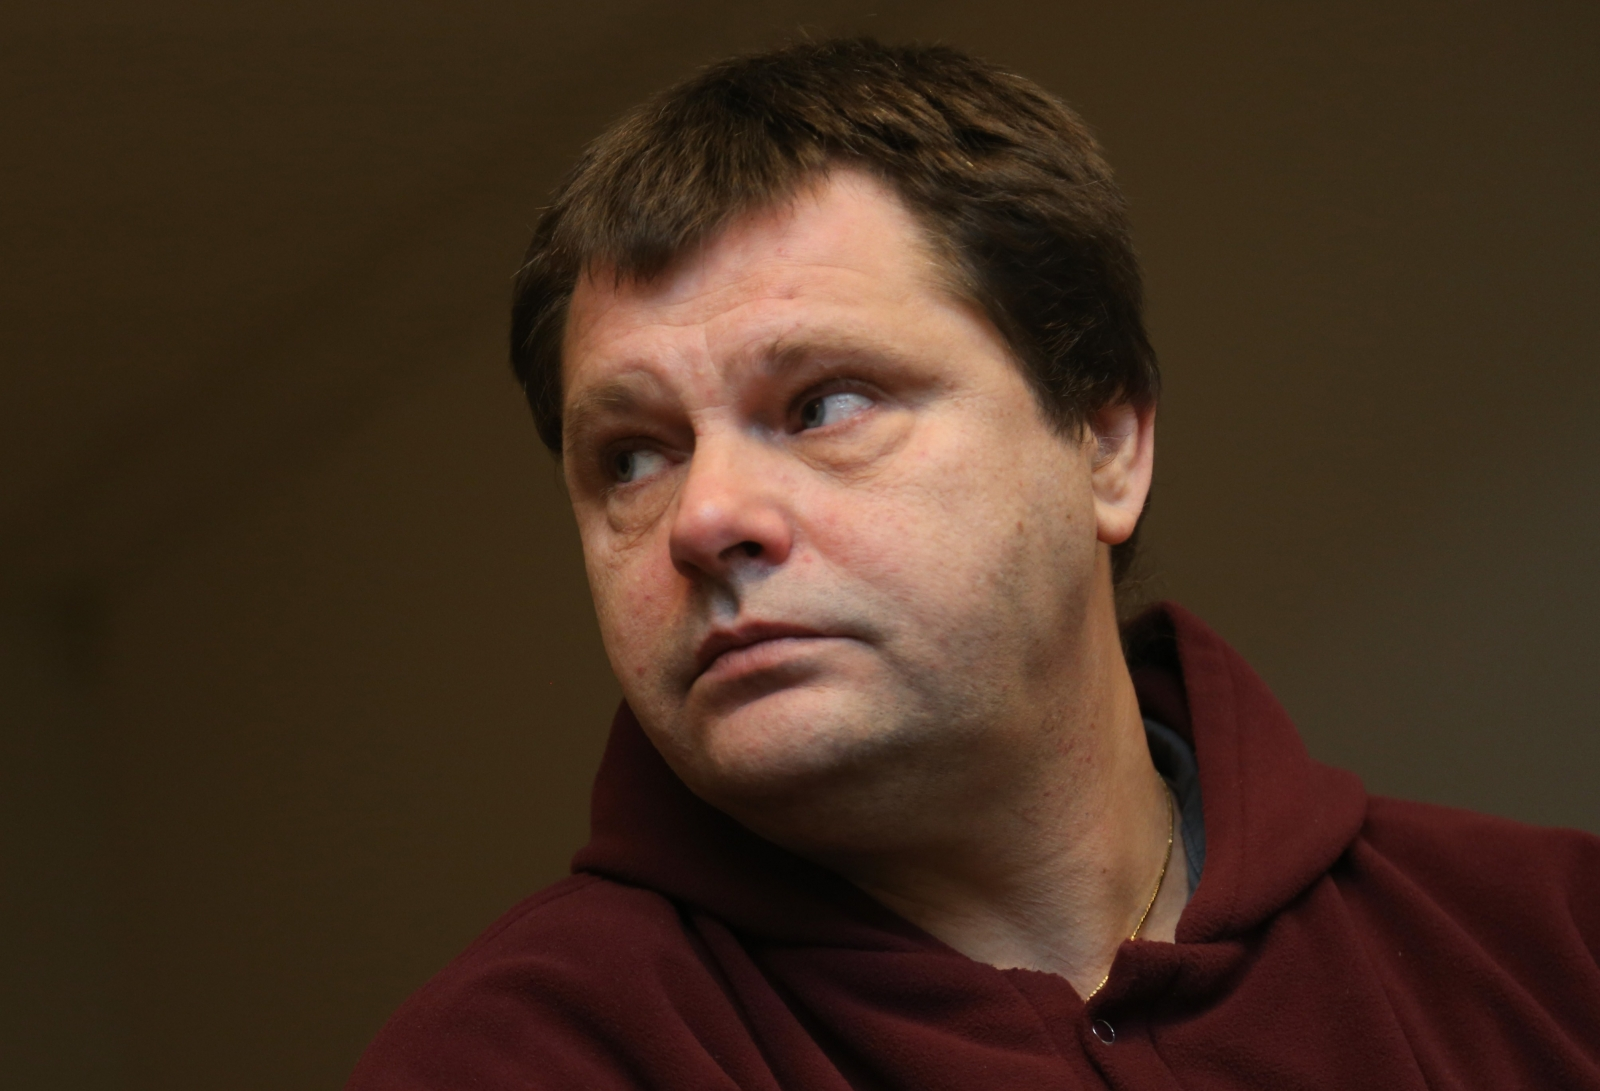 Frank Van Den Bleeken, who has spent the past 30 years in prison for repeated rape convictions and a rape-murder